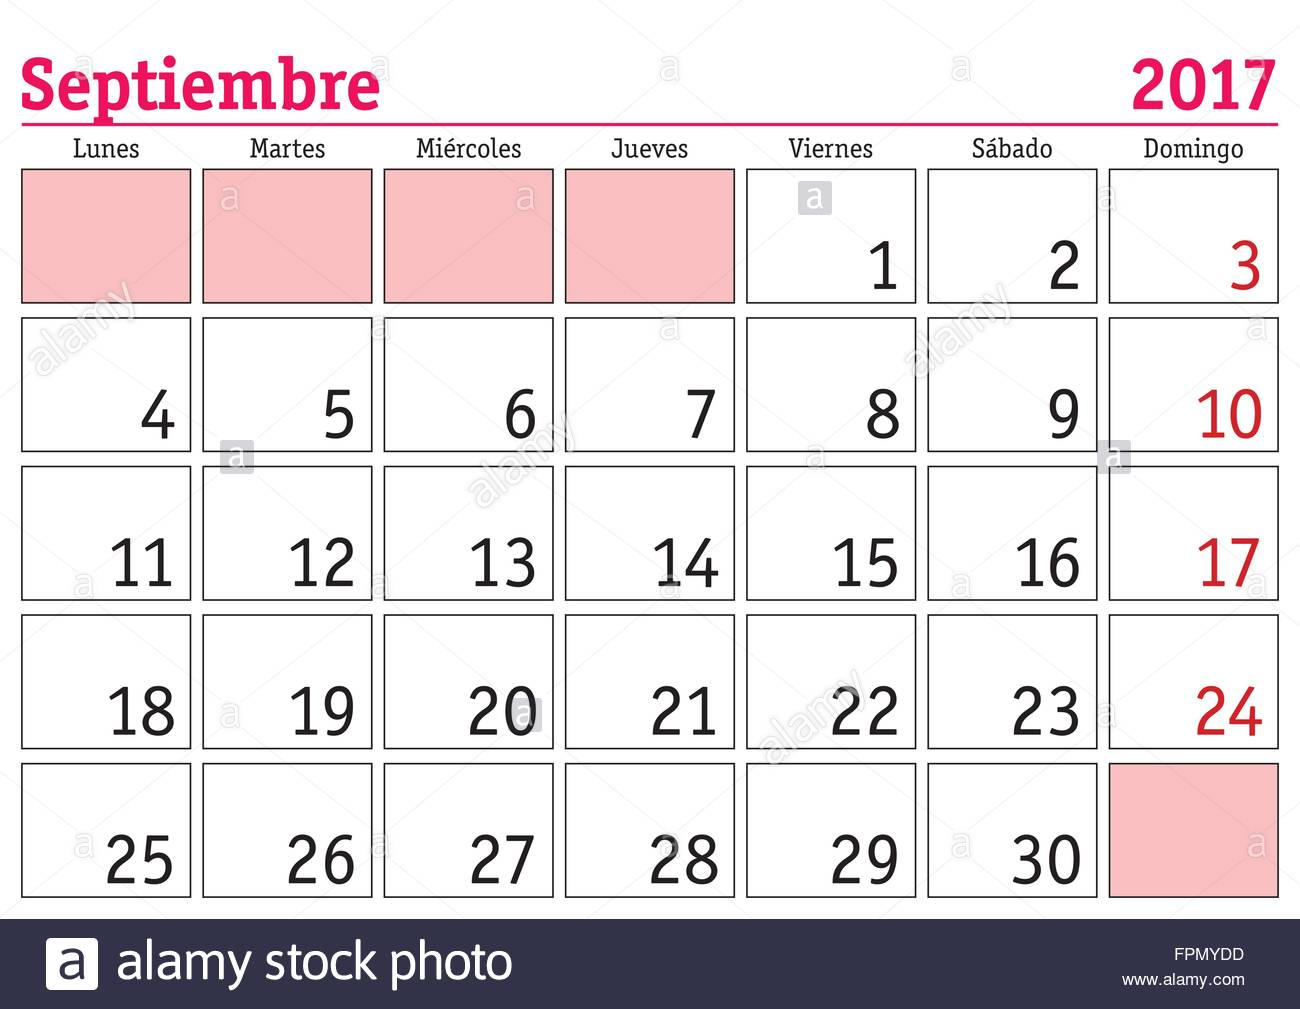 september month in a year 2017 wall calendar in spanish septiembre